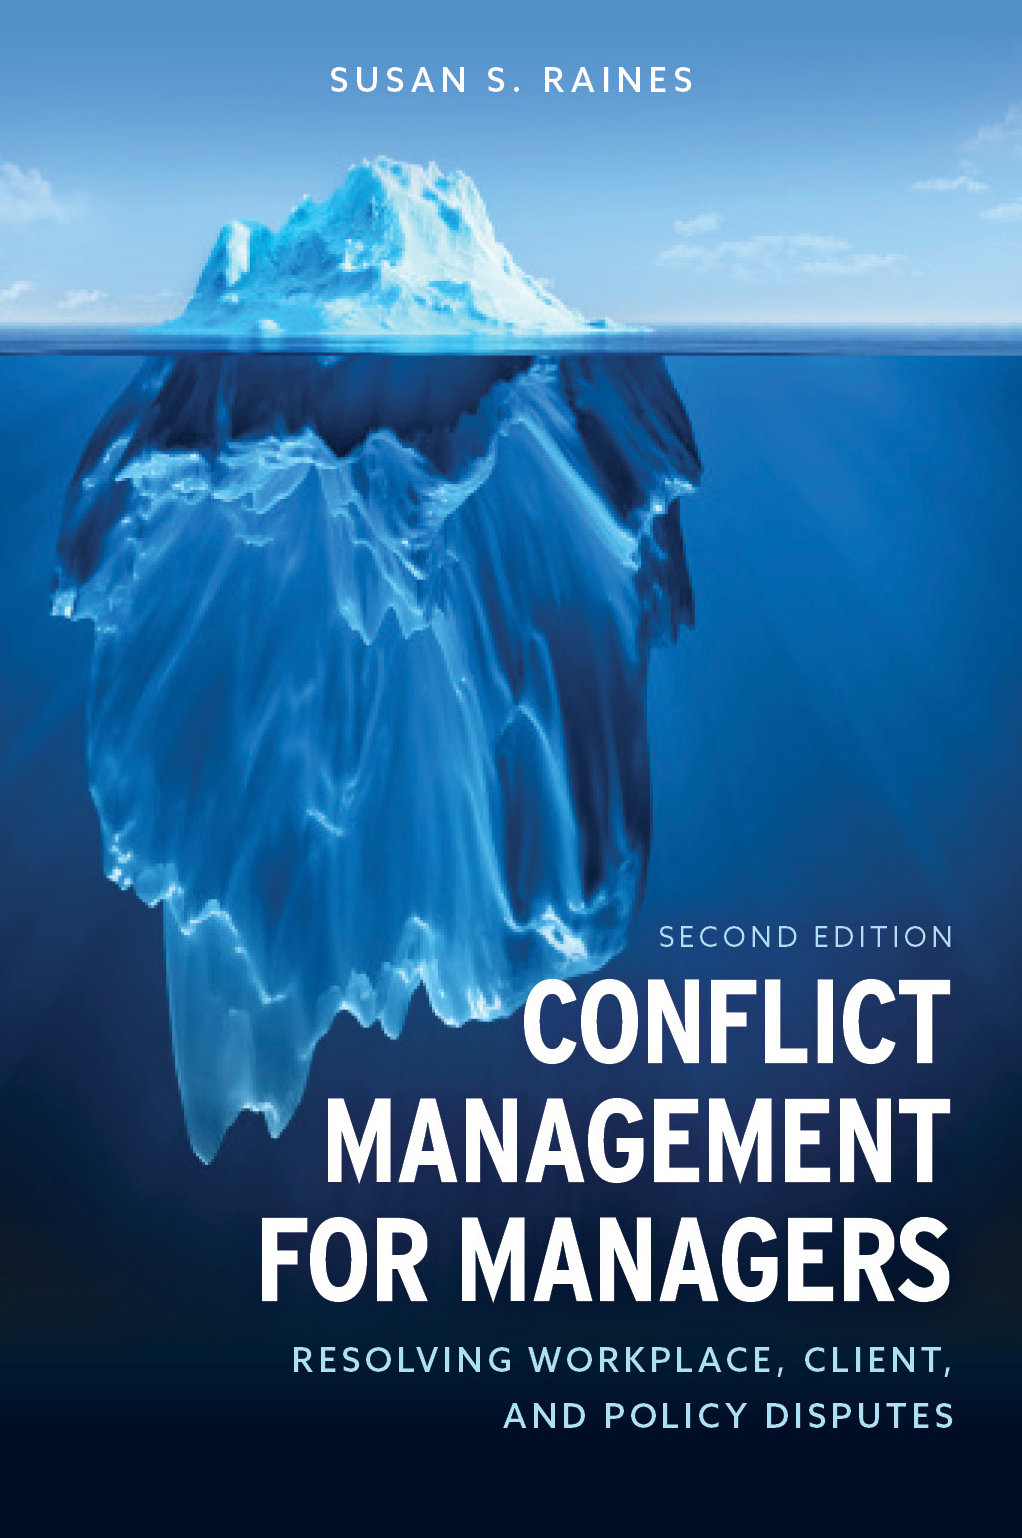 Conflict Management for Managers 2nd Edition